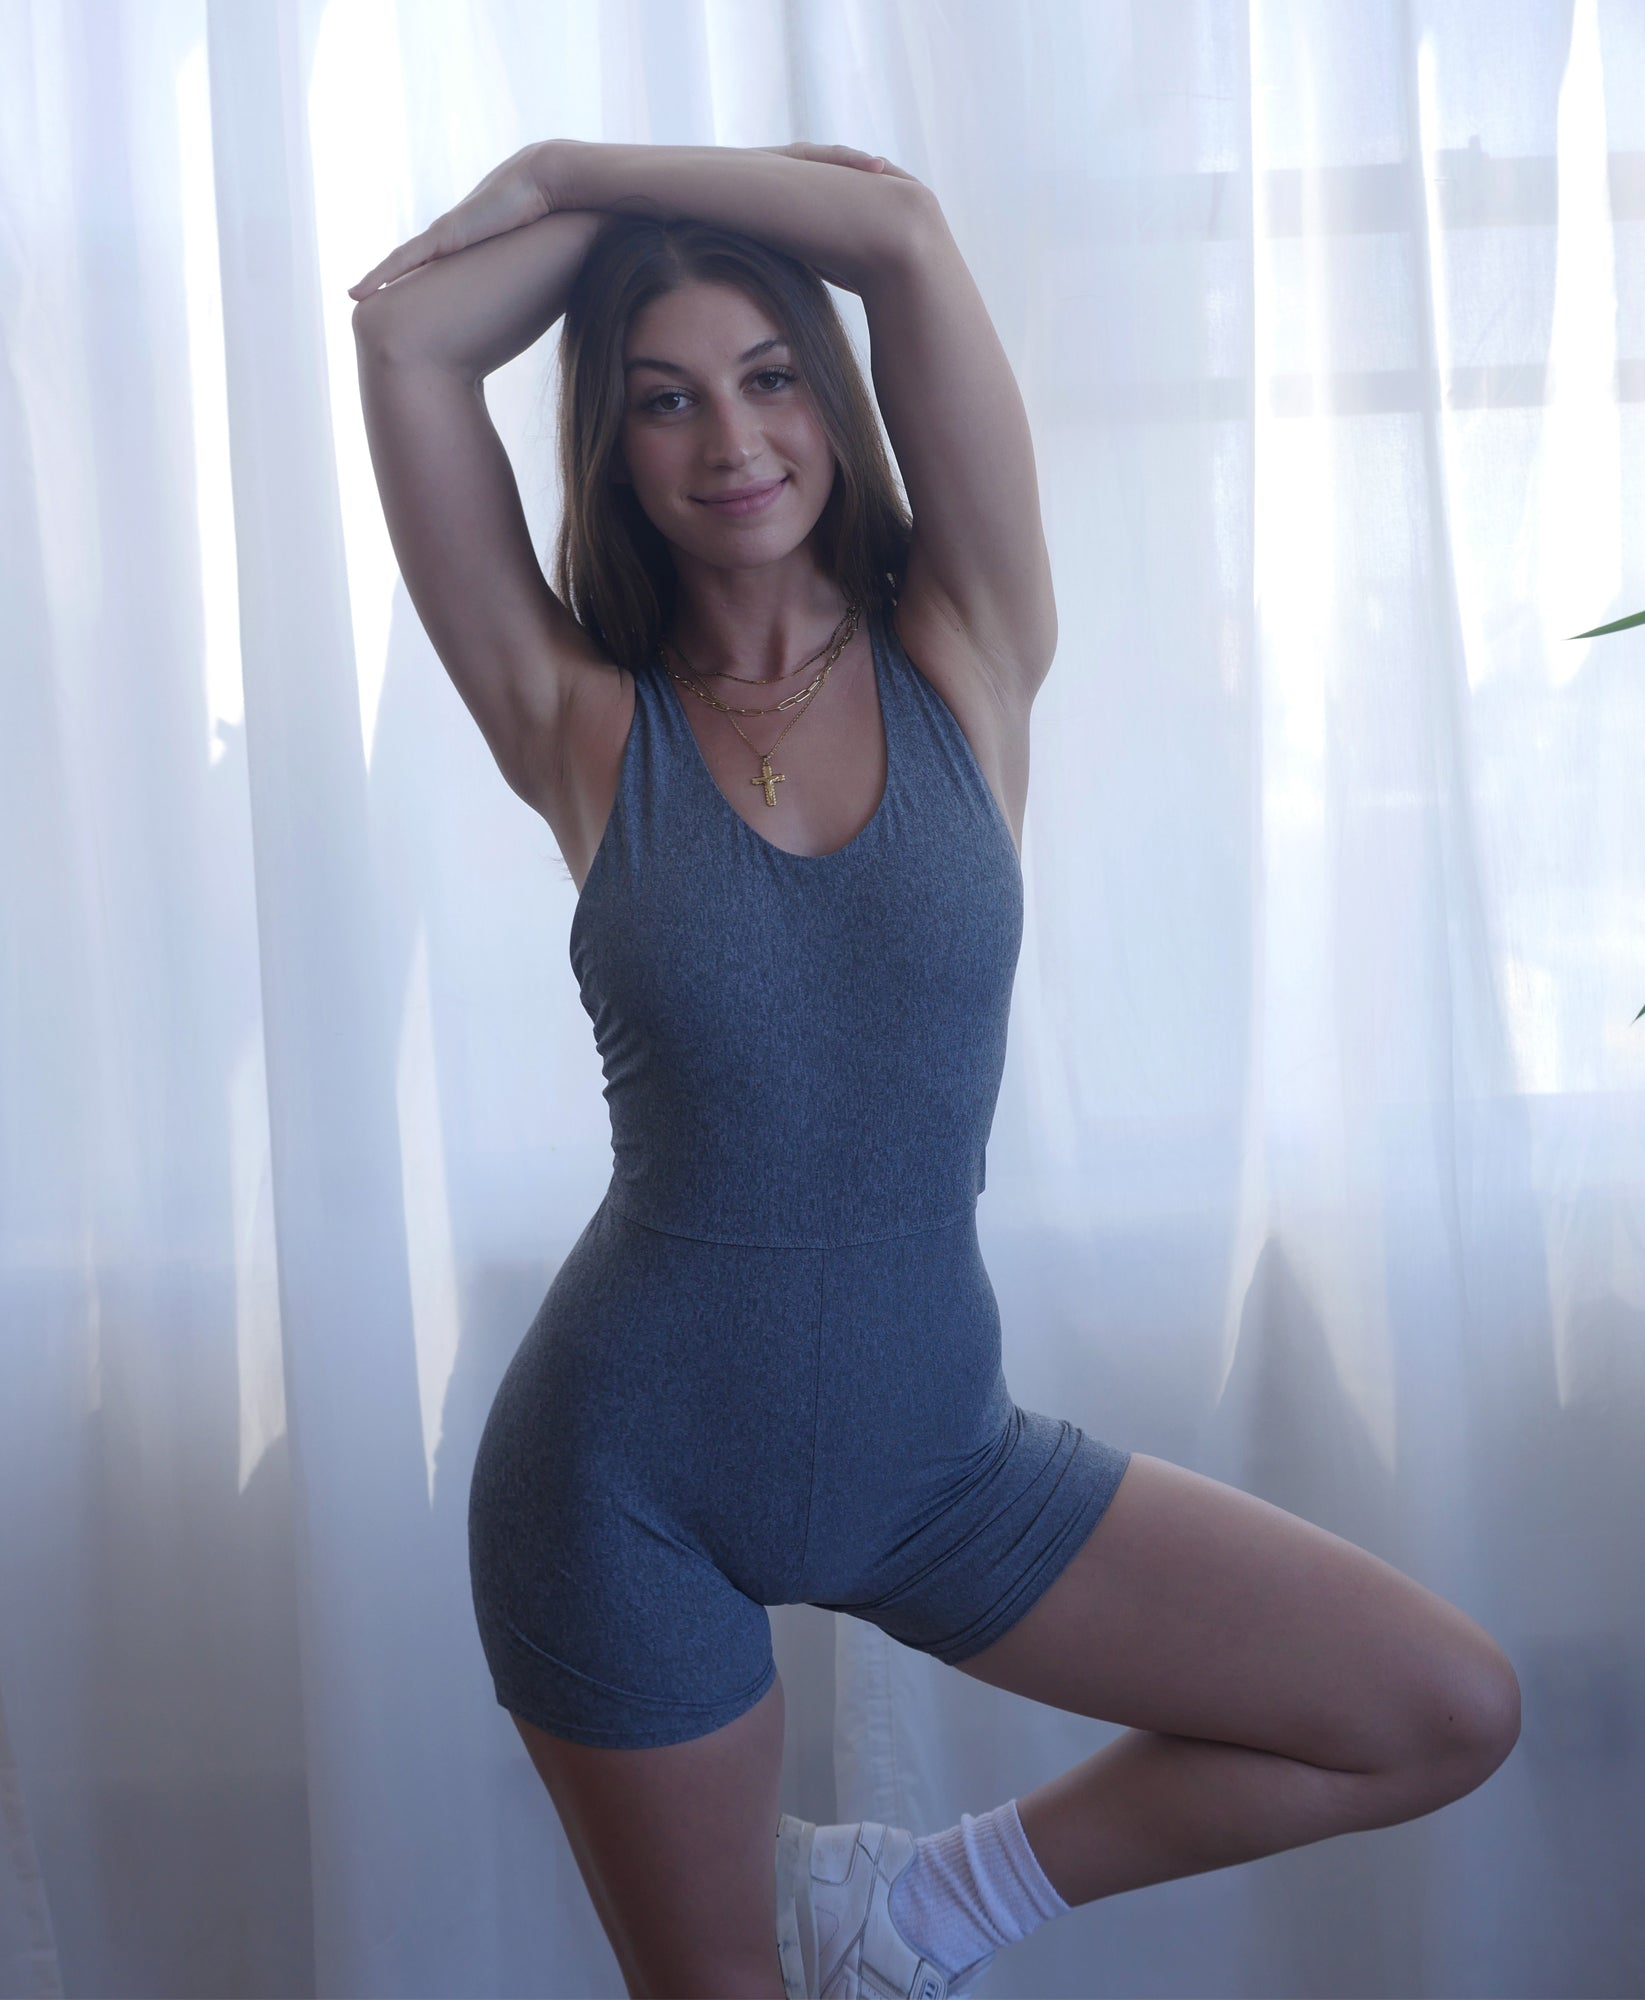 Wear One's At Bike Short Unitard in Heather Grey on Model Front View Second Look